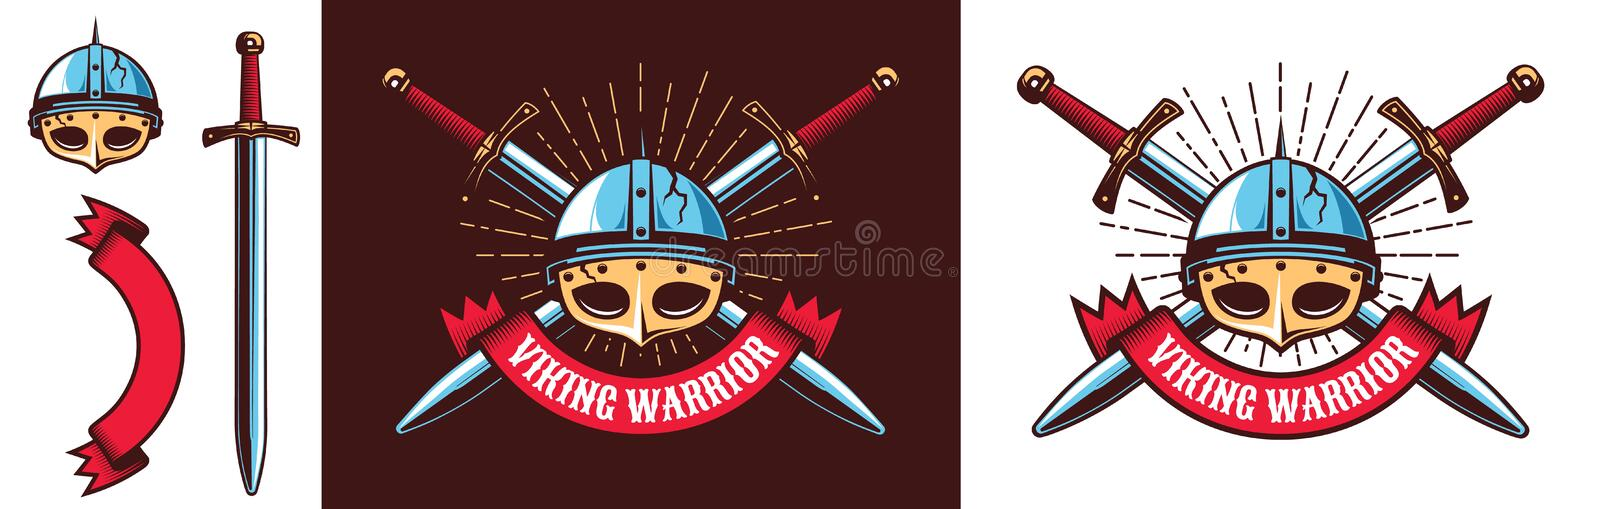 Medieval northern Viking warrior logo stock illustration